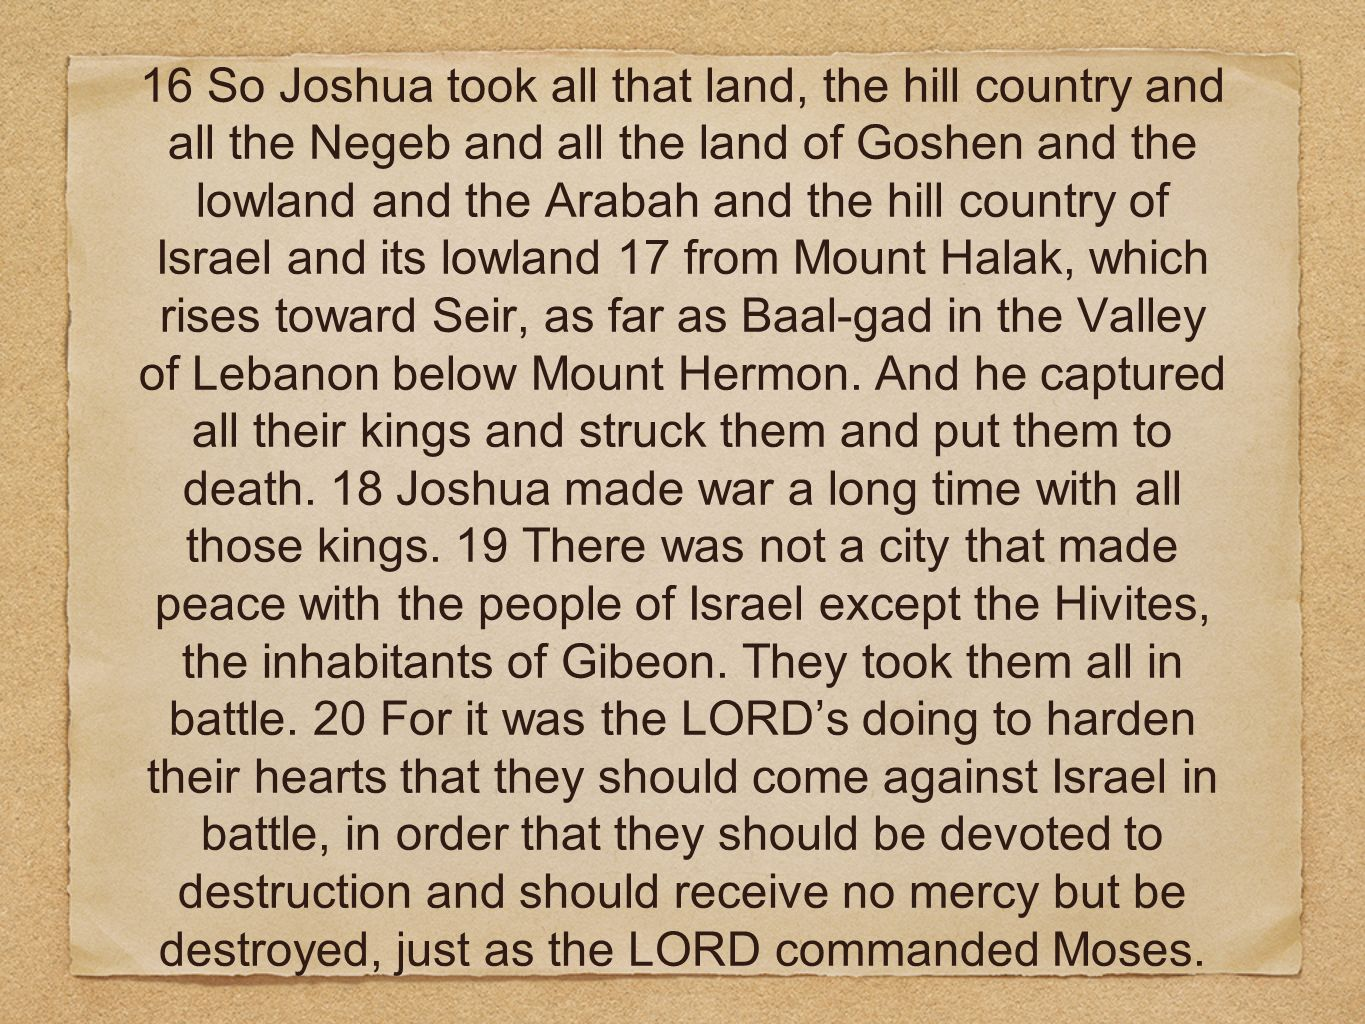 16 So Joshua took all that land, the hill country and all the Negeb and all the land of Goshen and the lowland and the Arabah and the hill country of Israel and its lowland 17 from Mount Halak, which rises toward Seir, as far as Baal-gad in the Valley of Lebanon below Mount Hermon.